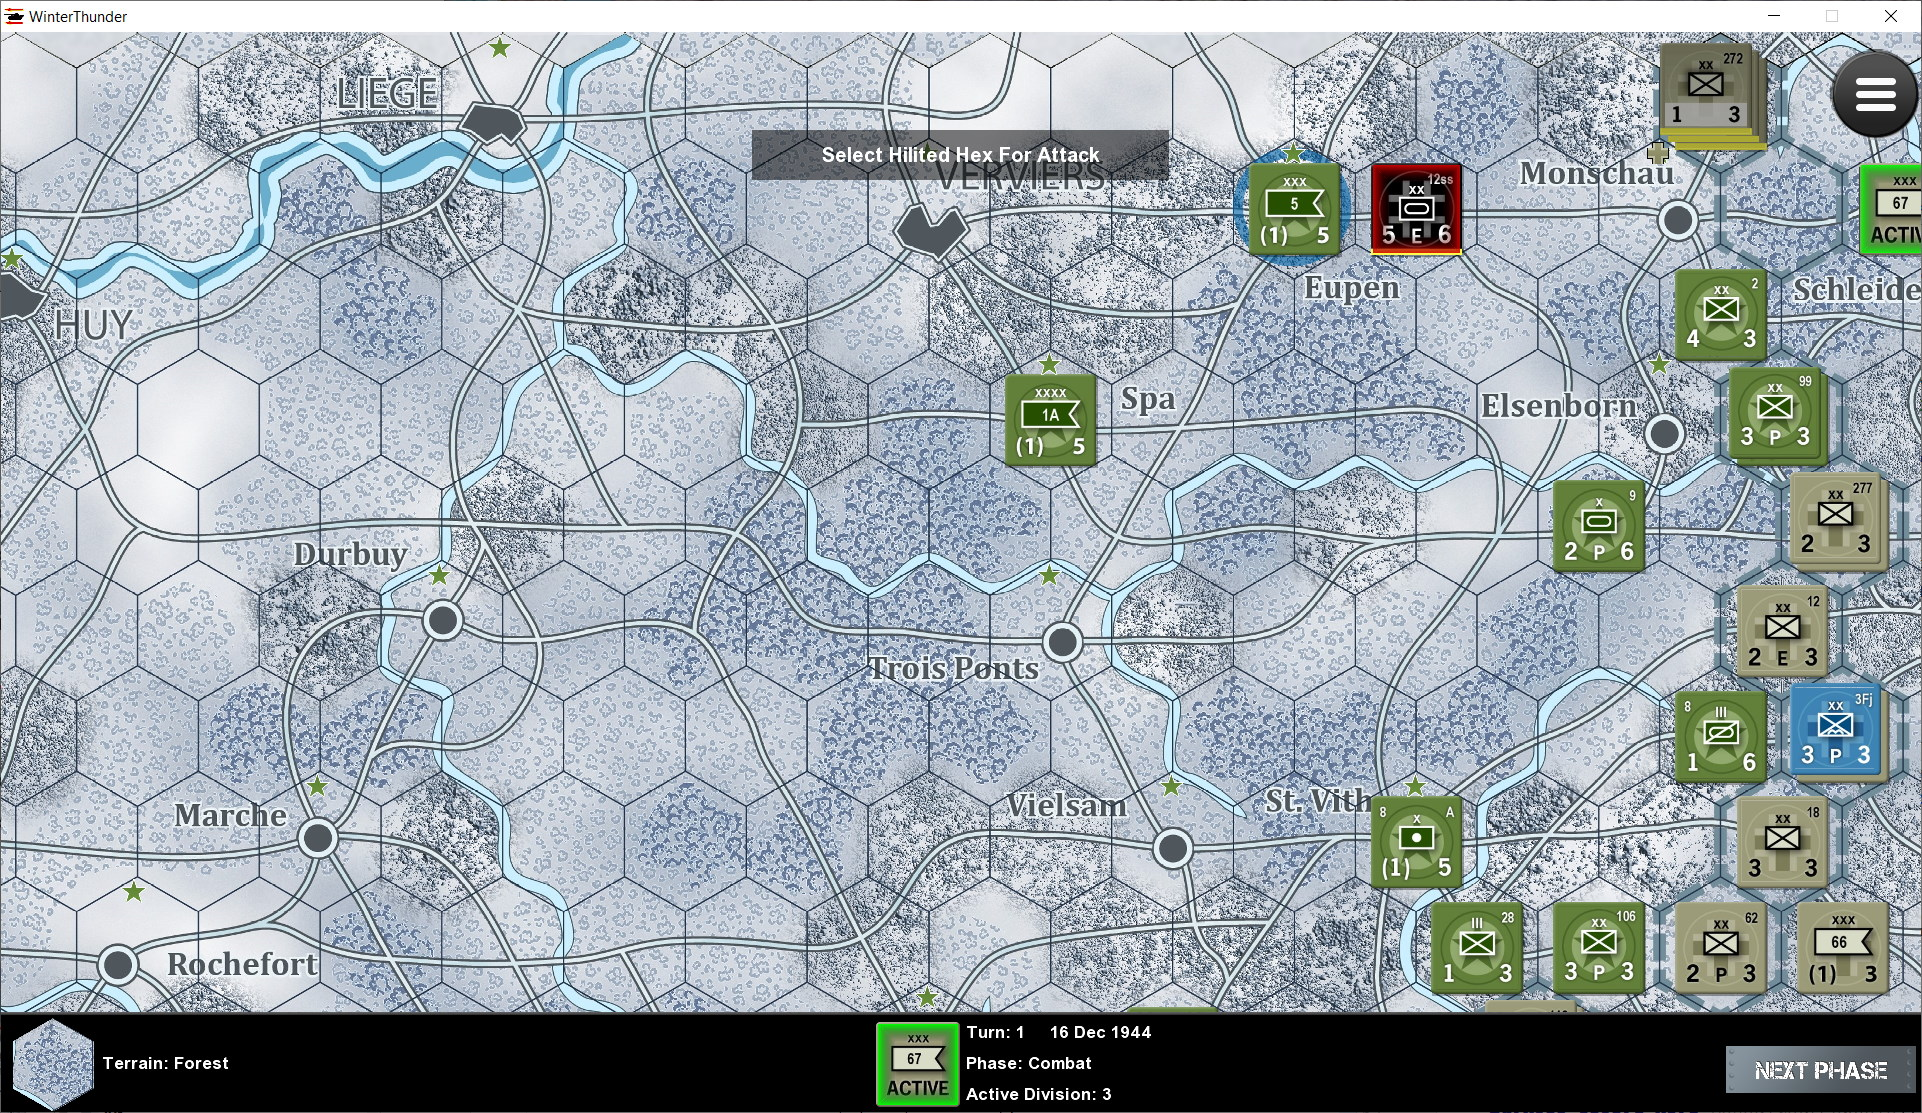 Panzers Exploit to attack Headquarters